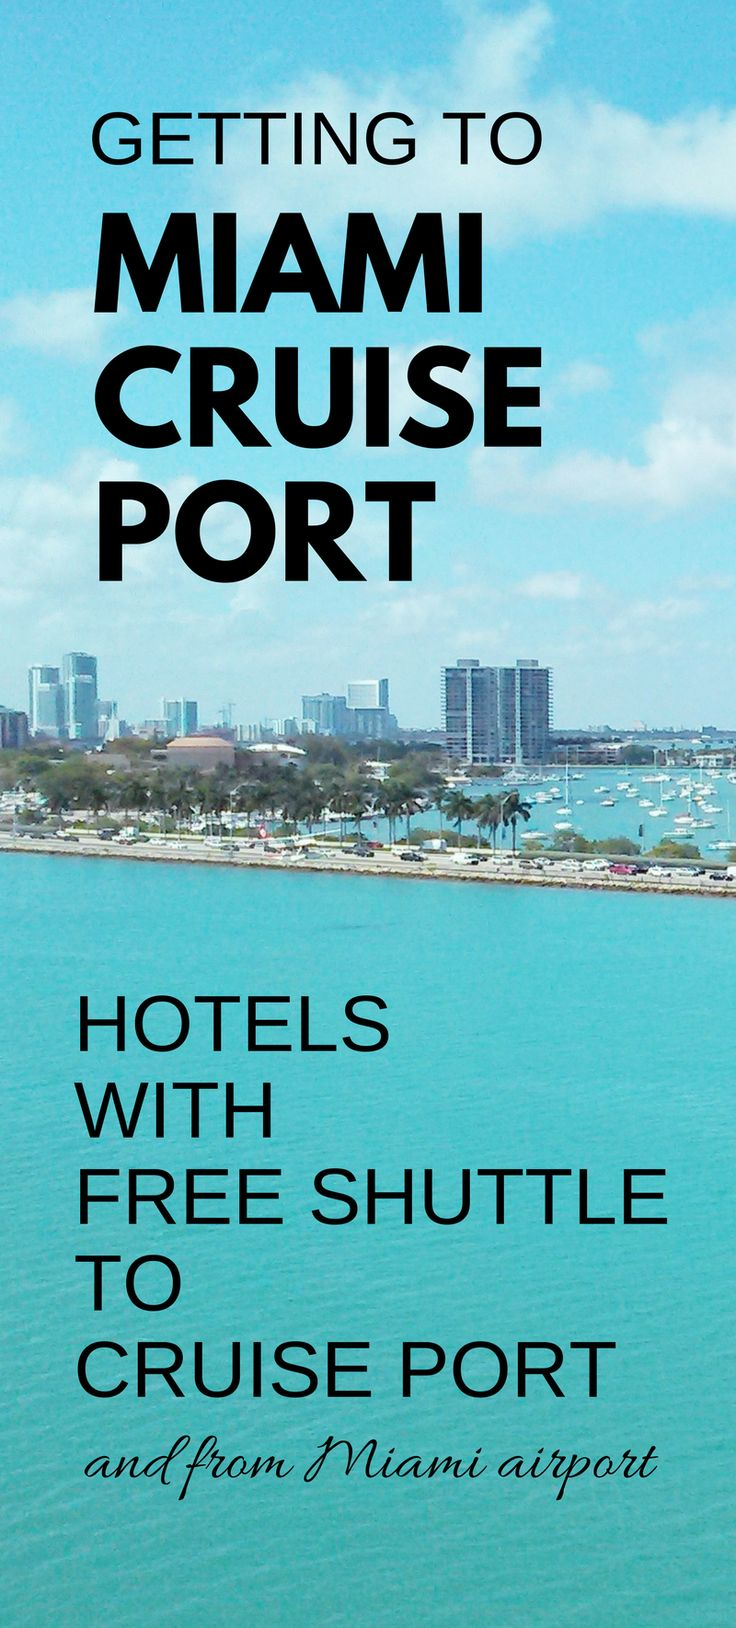 Cheap Hotels Near Miami Airport With Free Shuttle